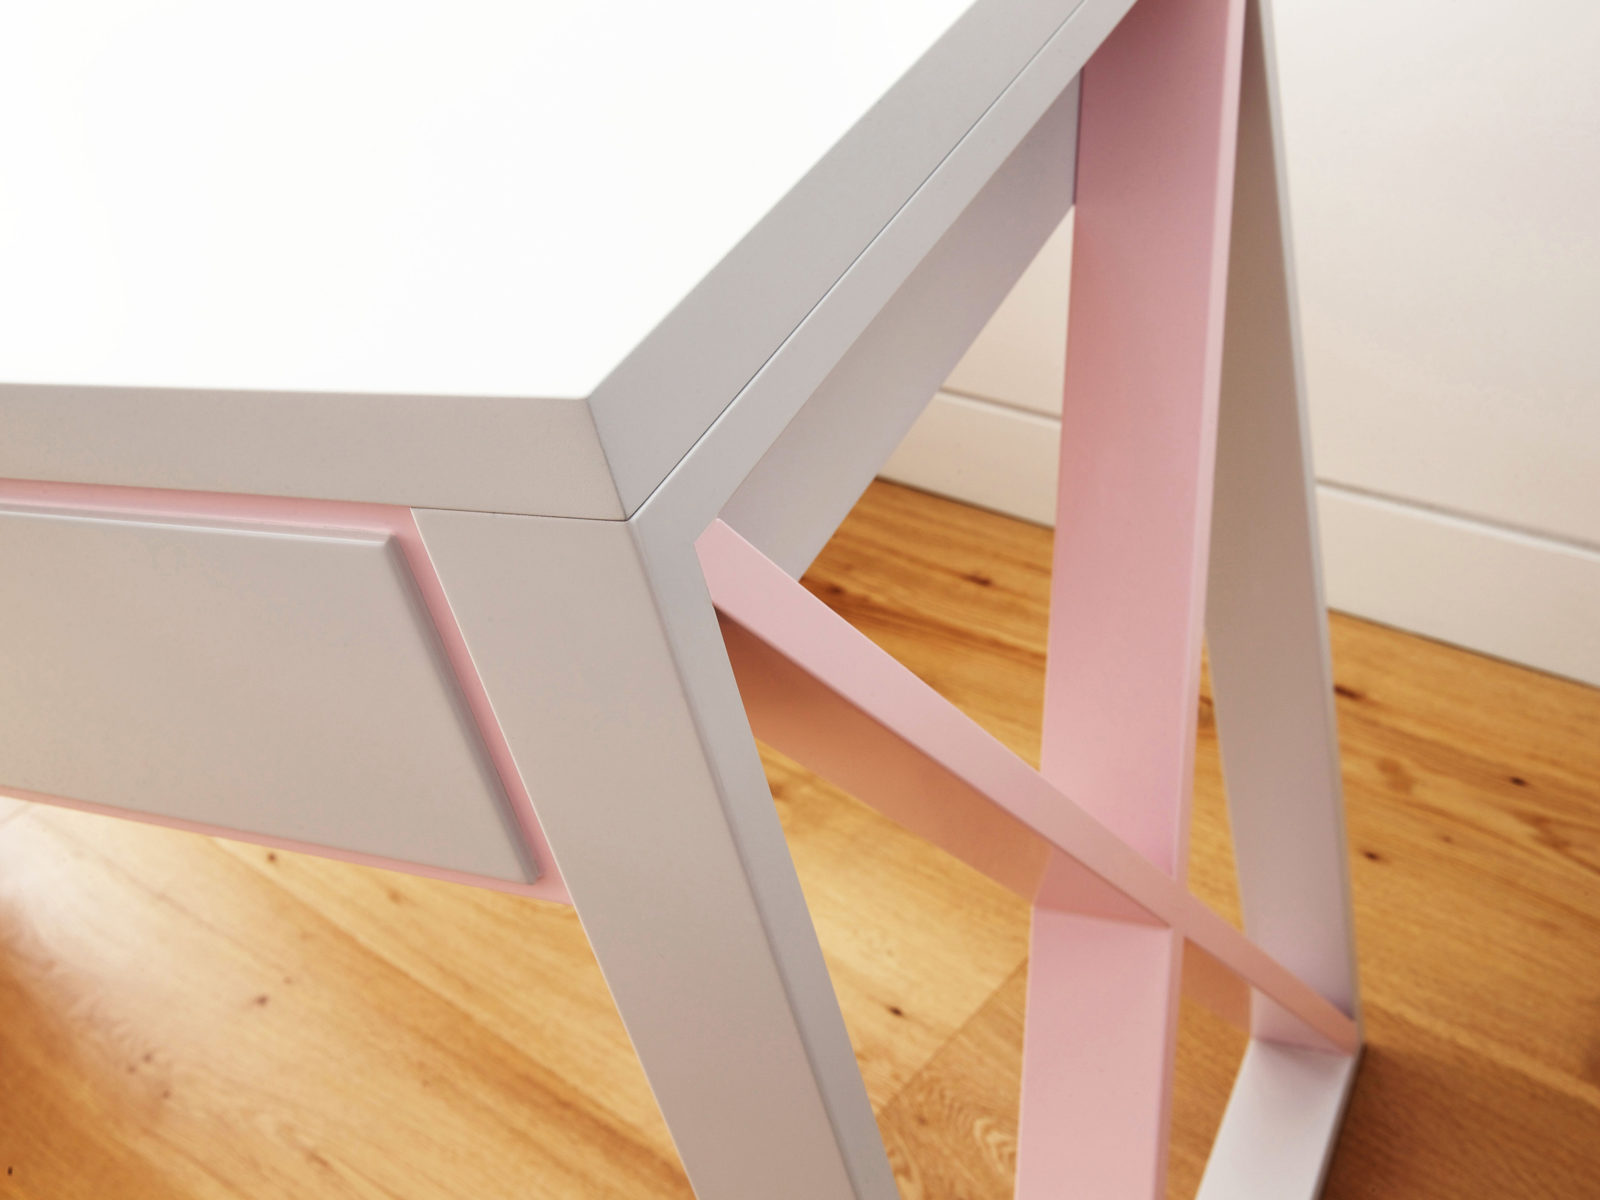 X lacquered desk detail